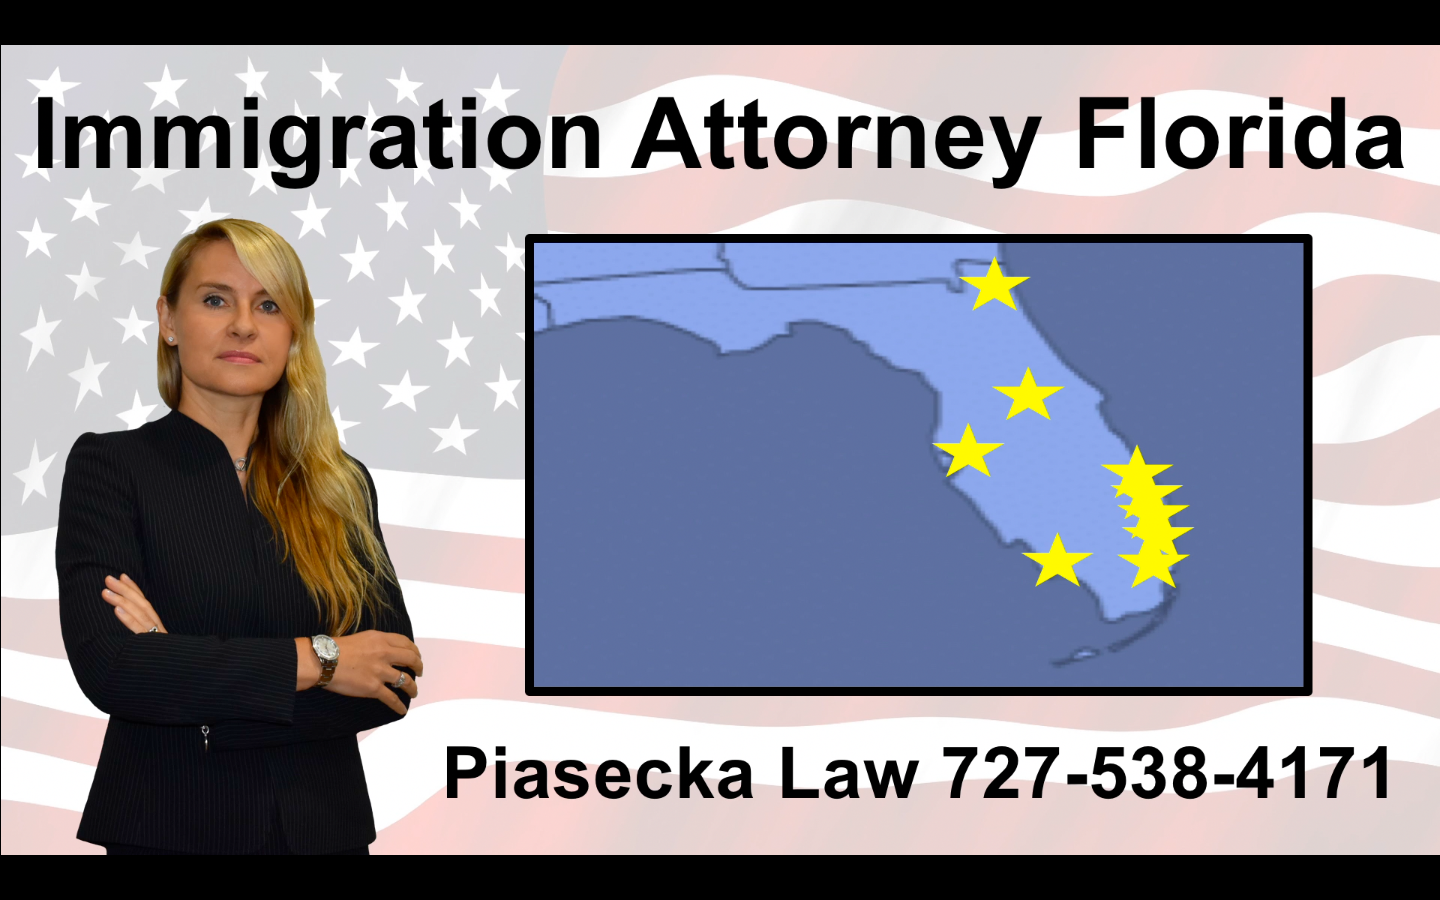 Immigration Attorney Florida Agnieszka Aga Piasecka